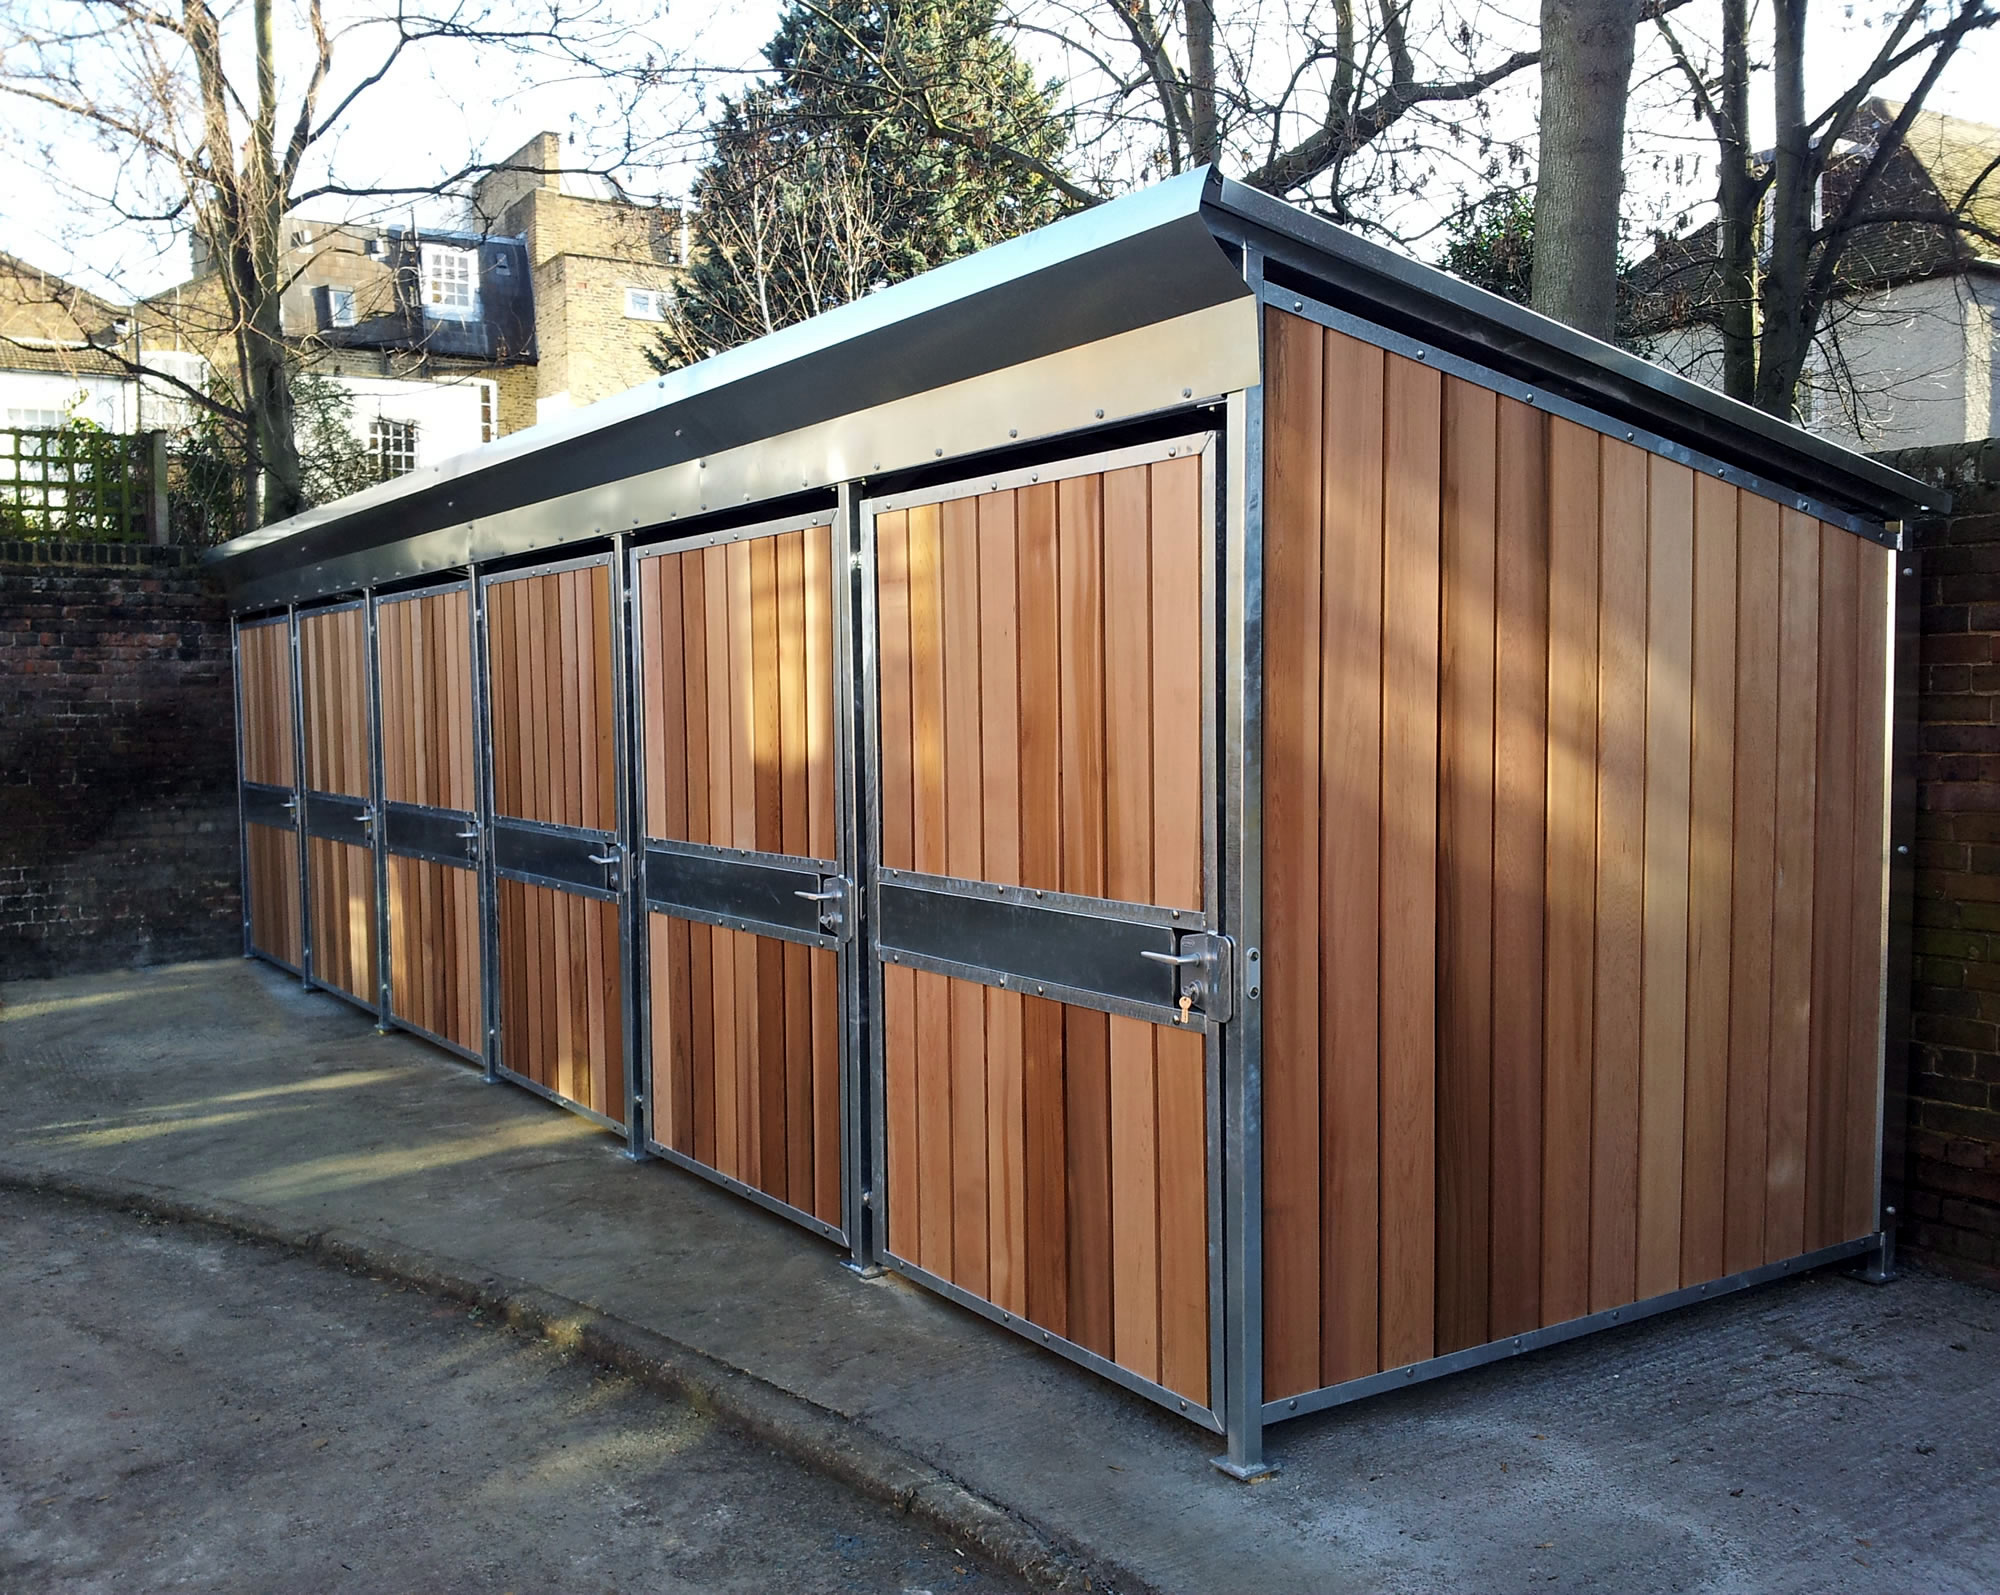 hammersmith cycle shelter - Copy (1).jpg